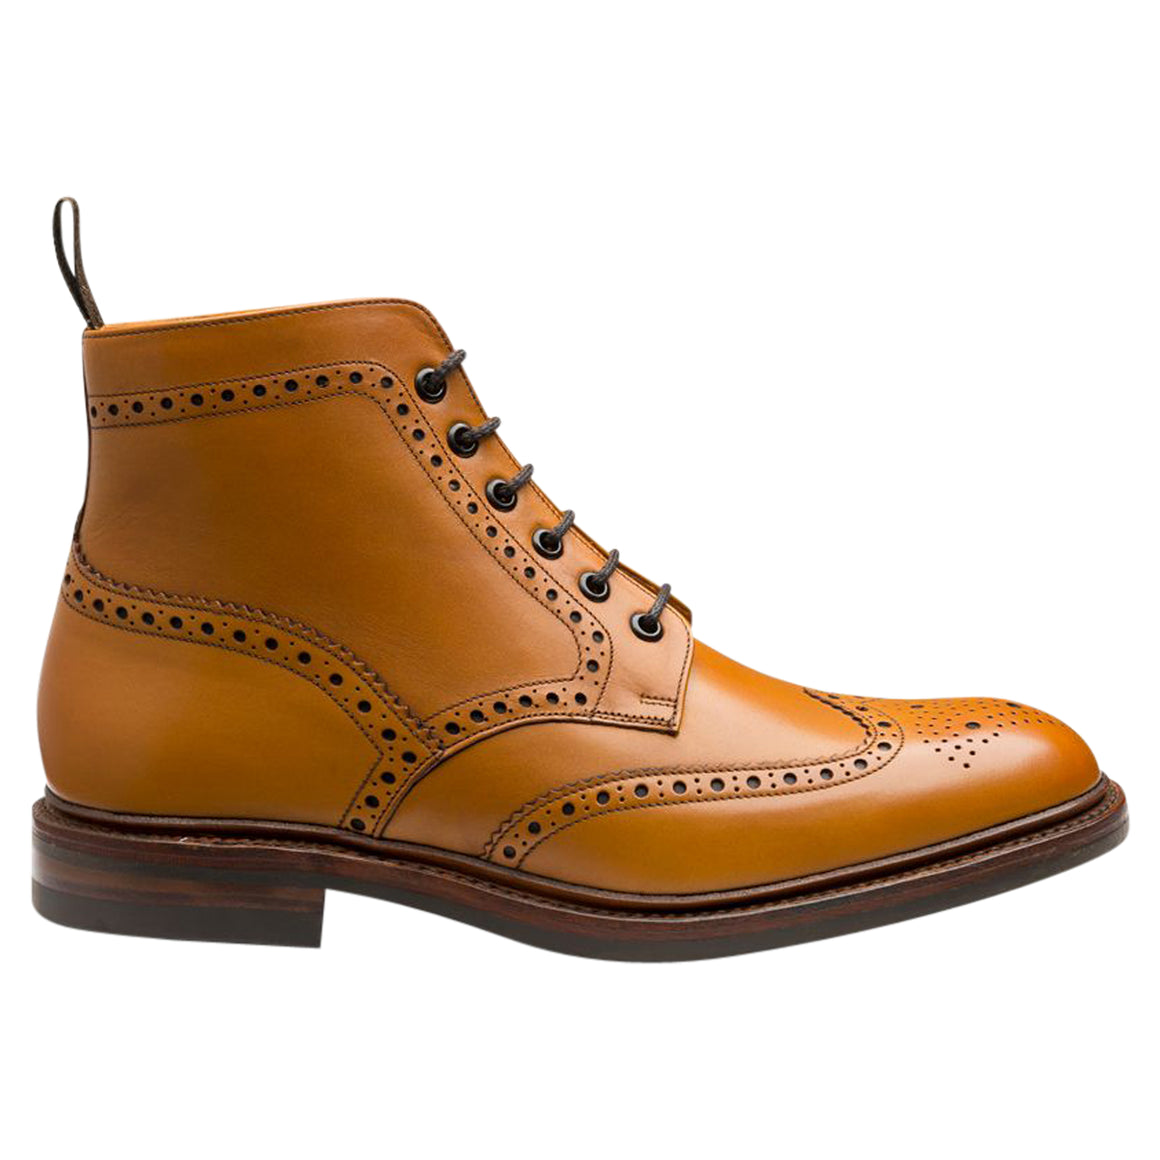 Burford Boots for Men in Tan